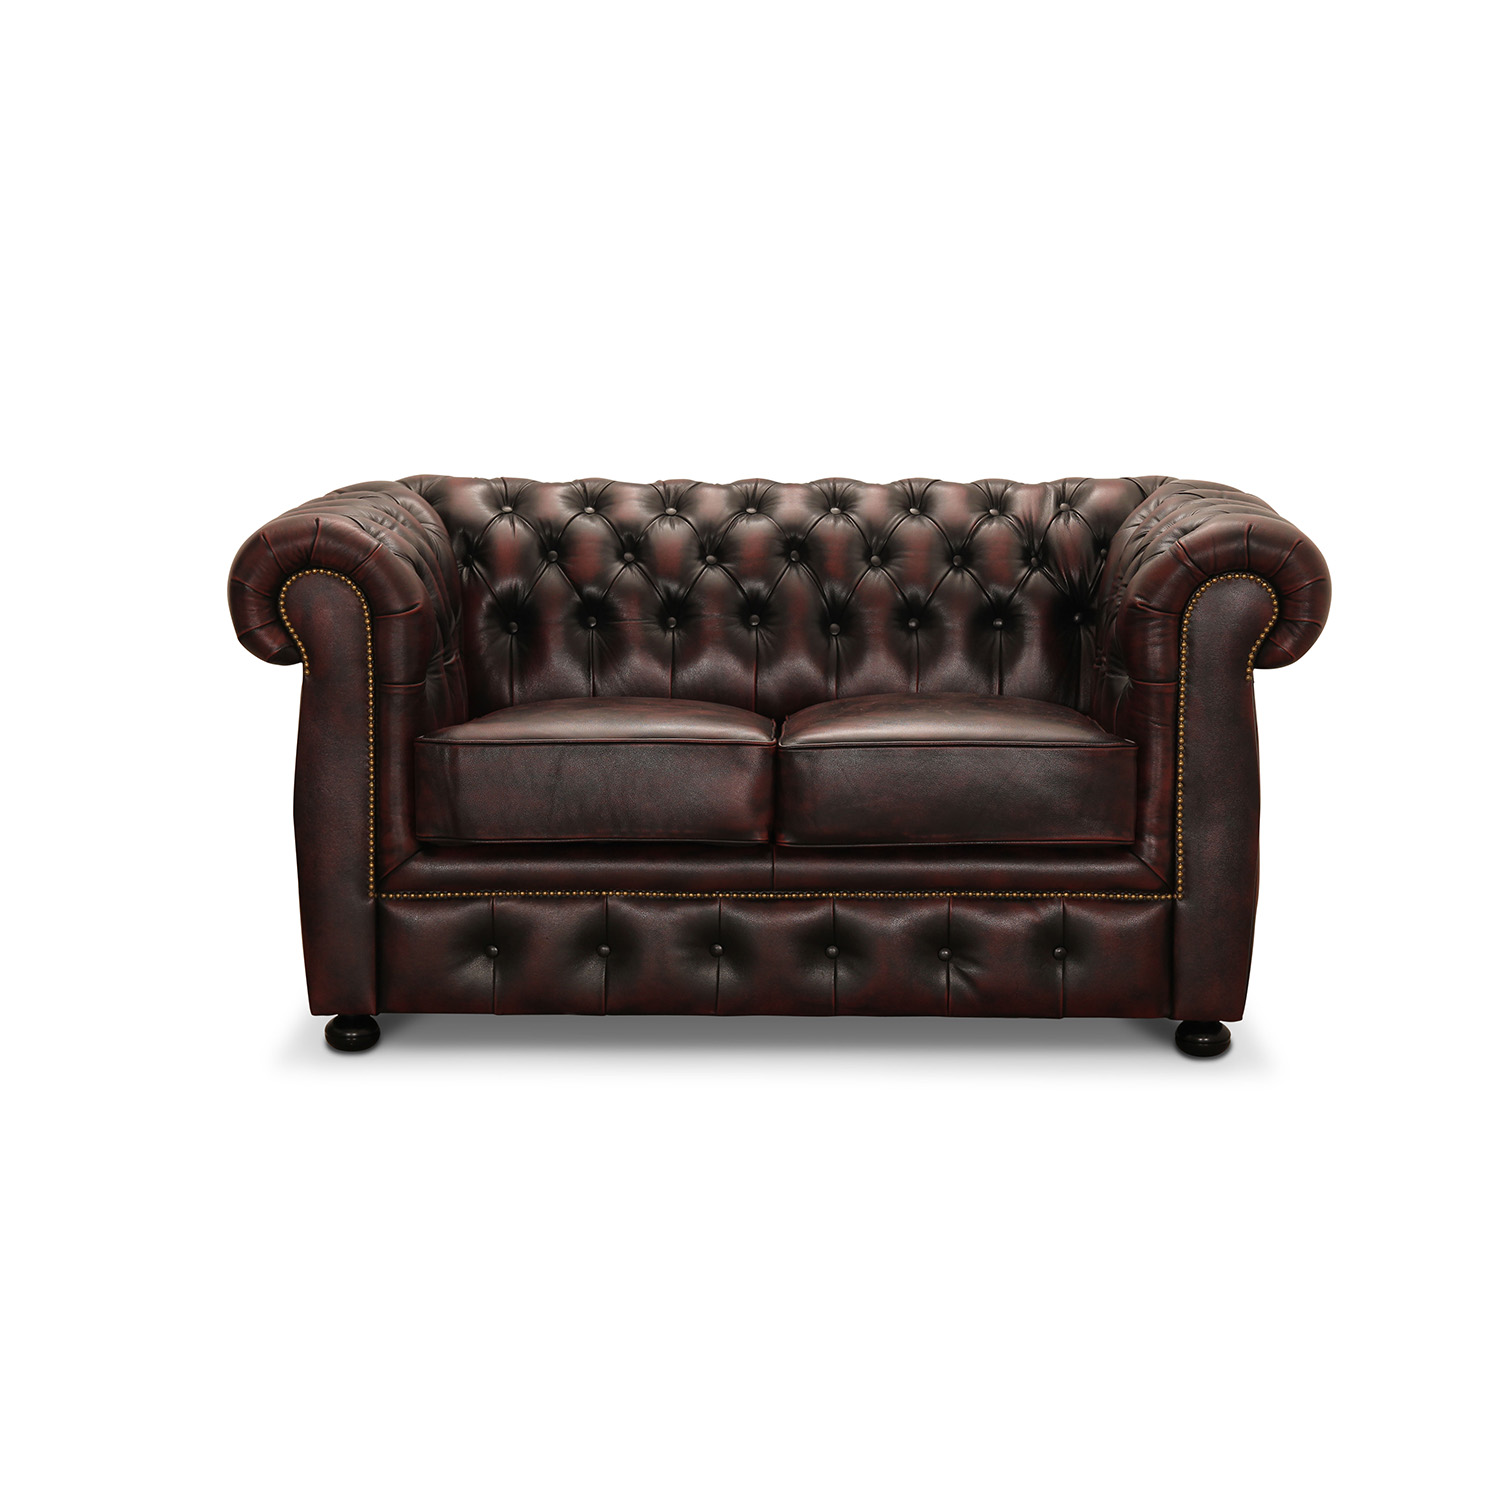 Image of   HAGA Liverpool 2 chesterfield sofa - oxblod læder